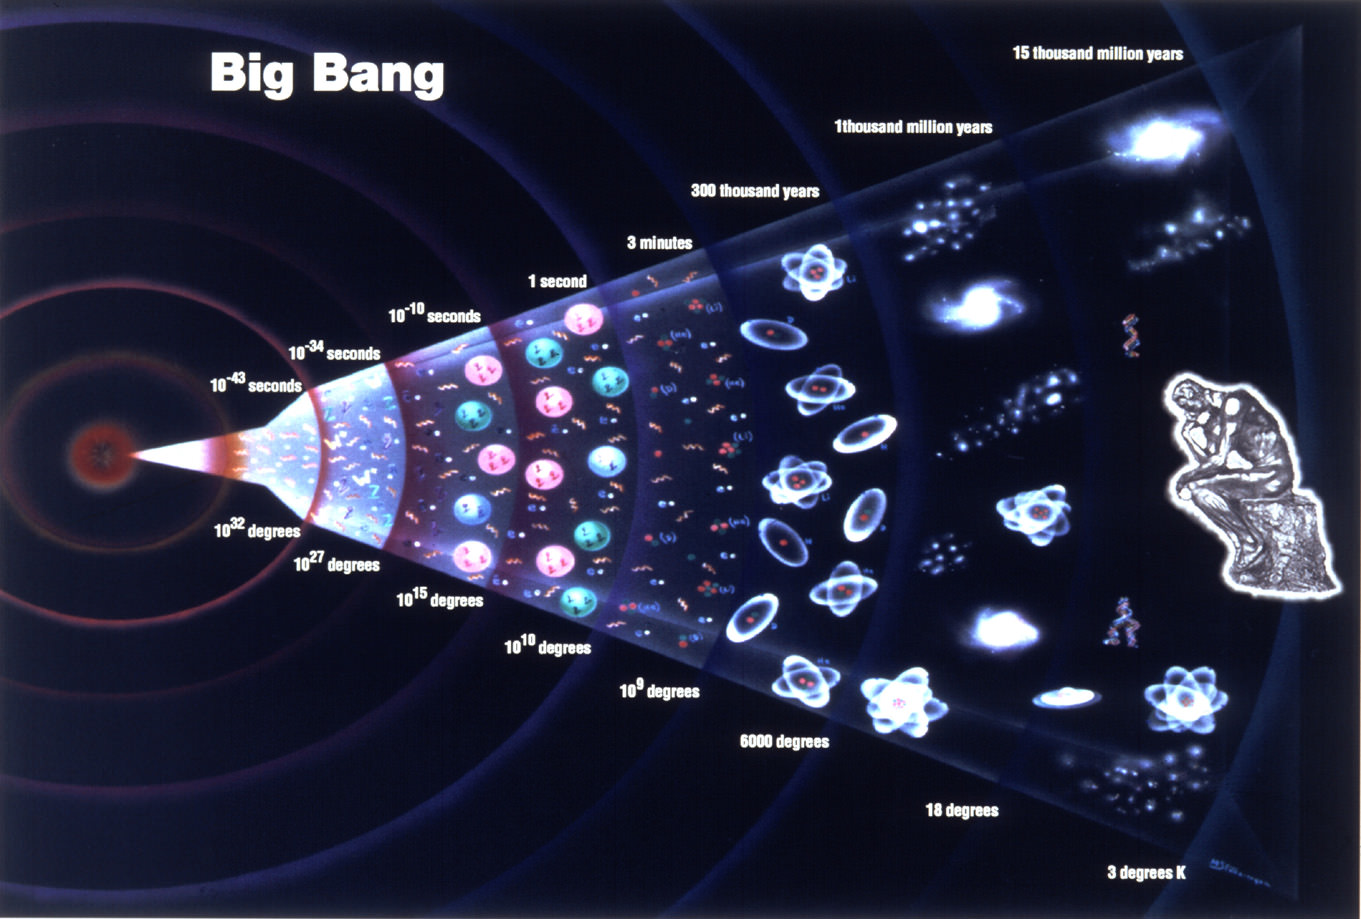 hight resolution of Big Bang Theory: Evolution of Our Universe - Universe Today